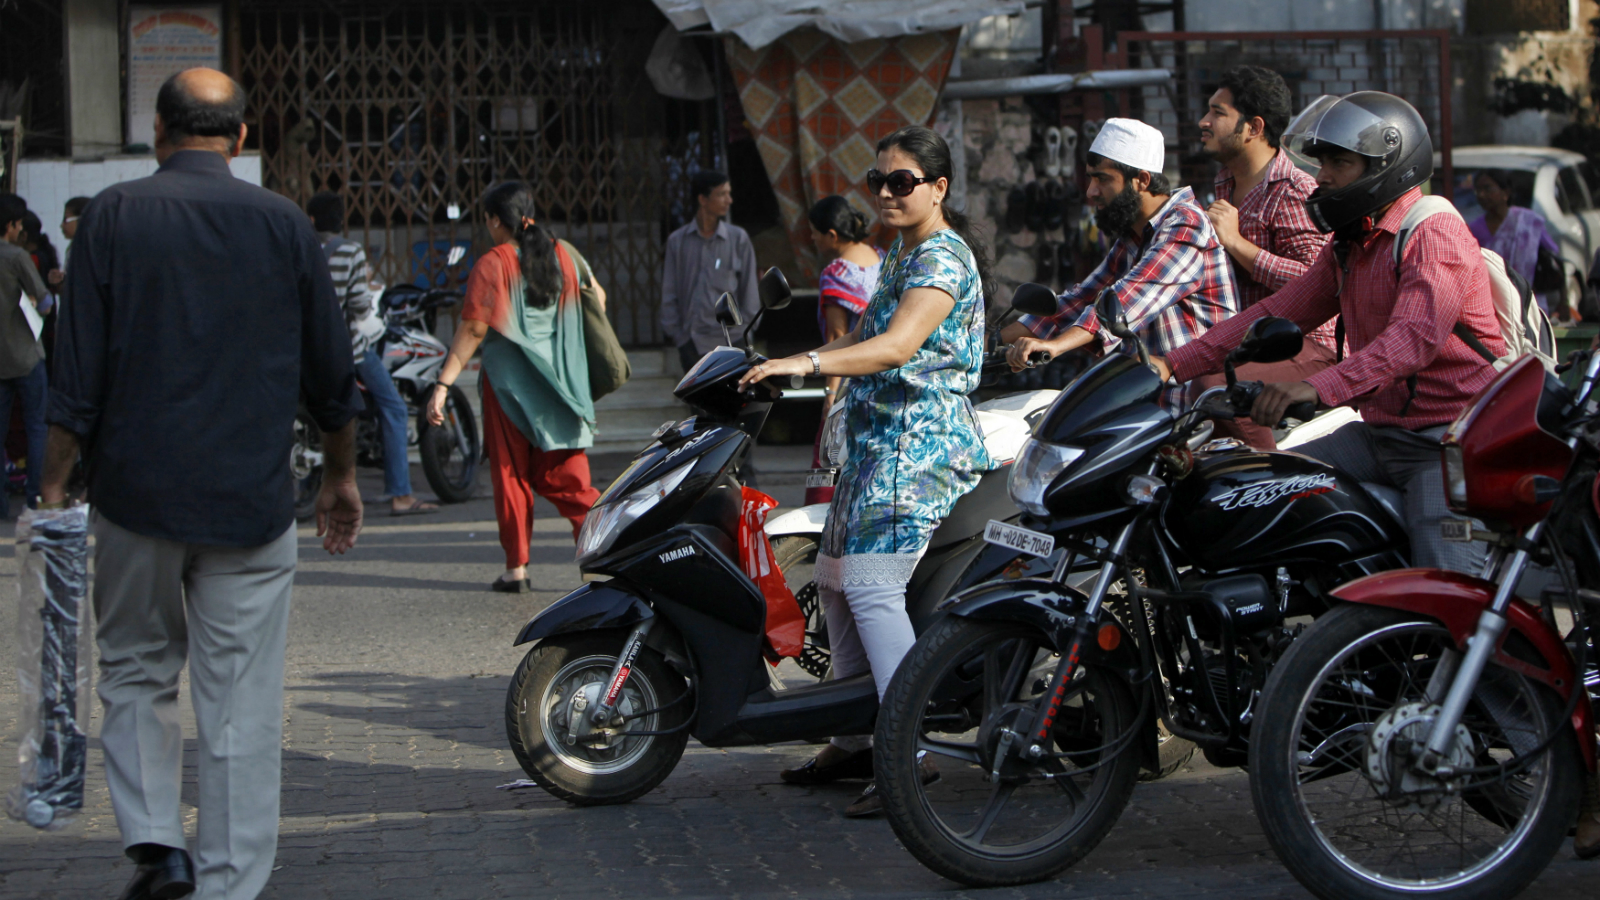 A woman riding a scooter waits for a traffic signal along a street in Mumbai February 5, 2014. 'Plush pink' and 'burgundy bliss' scooters are the new buzz on India's roads, even as the rest of the autos market is sputtering amid an economic slowdown. Young, well-heeled and independent-minded women, who are also conscious of the perils of using public transport, are helping to propel a boom in sales of scooters.